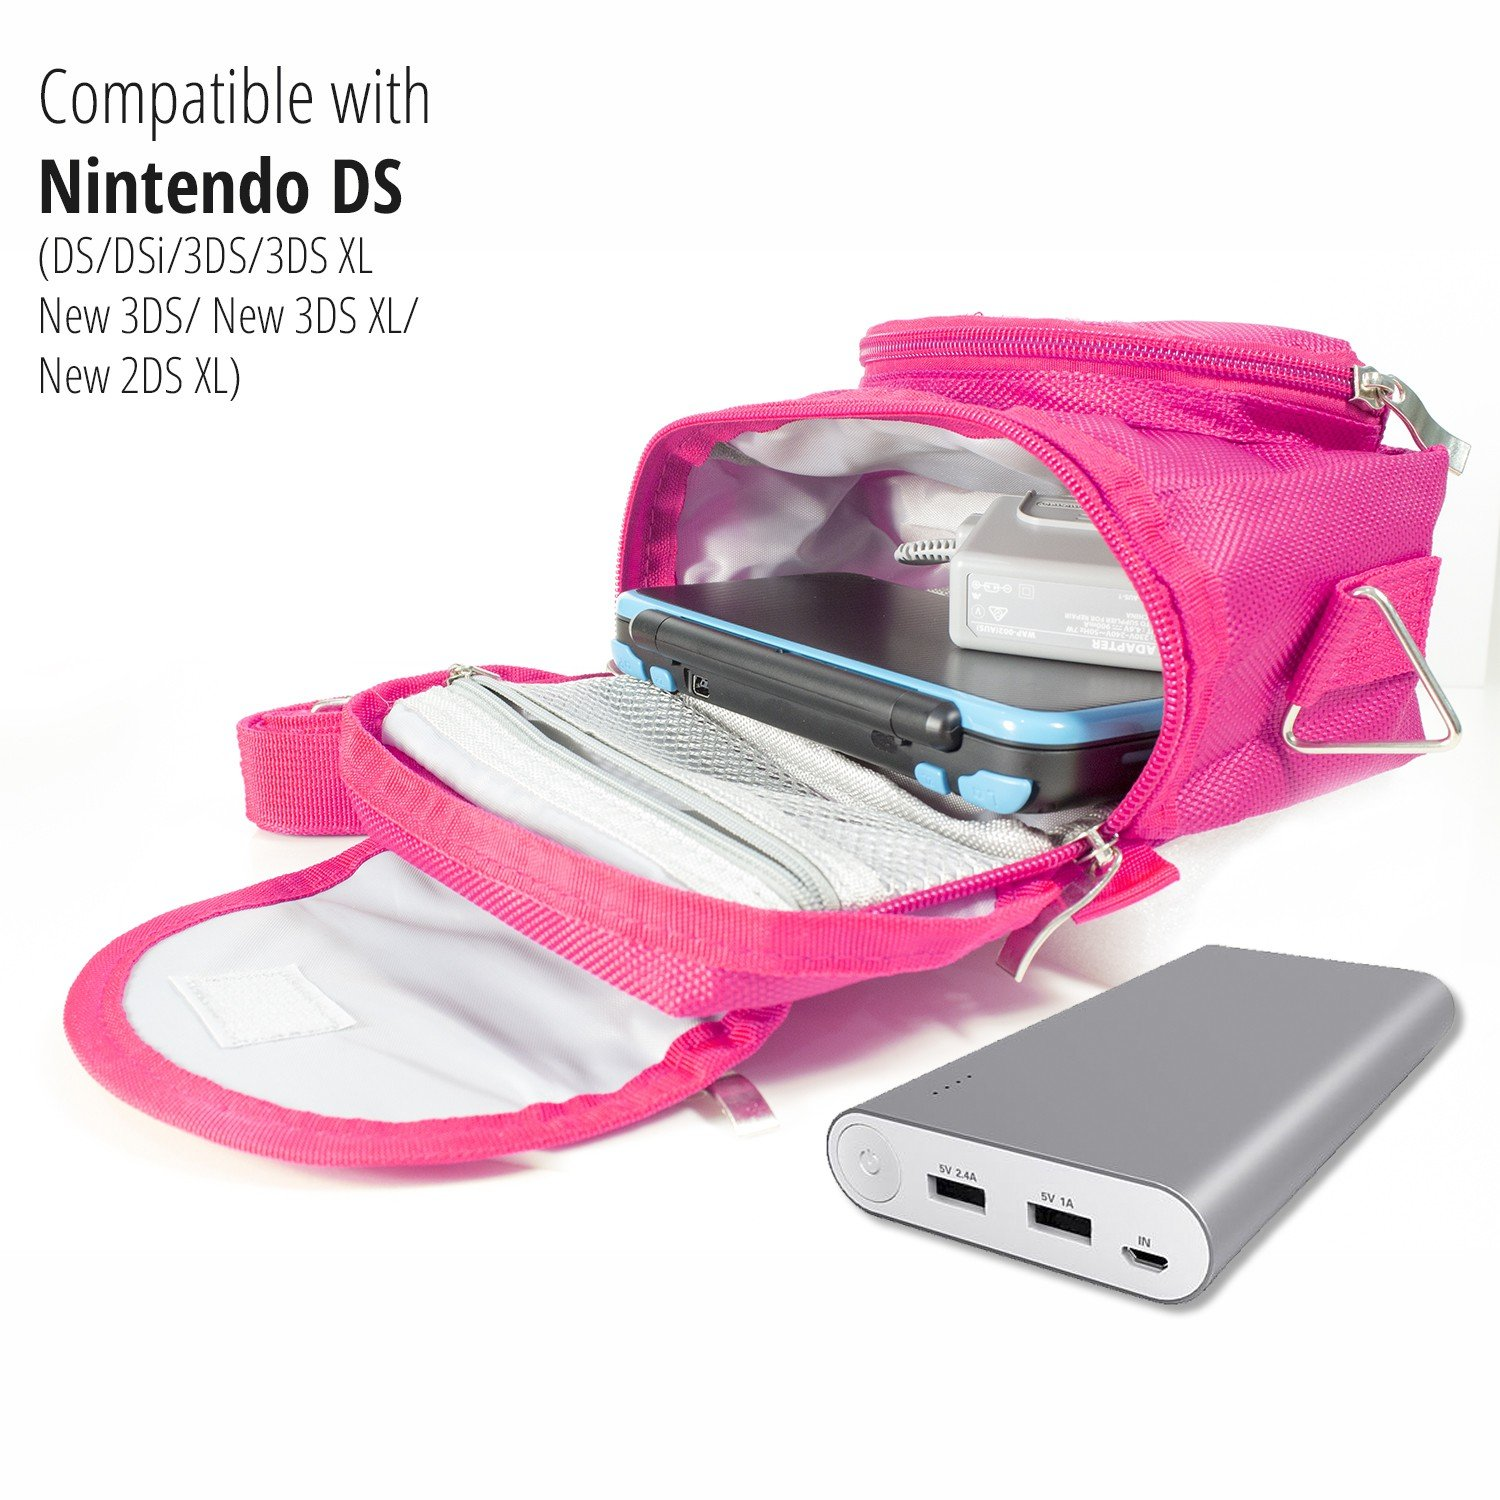 Orzly Travel Bag for Nintendo DS Consoles (New 2DS XL / 3DS / 3DS XL / New 3DS / New 3DS XL / Original DS / DS Lite / DSi / etc.) - Includes Belt Loop, Carry Handle, Shoulder Strap - PINK